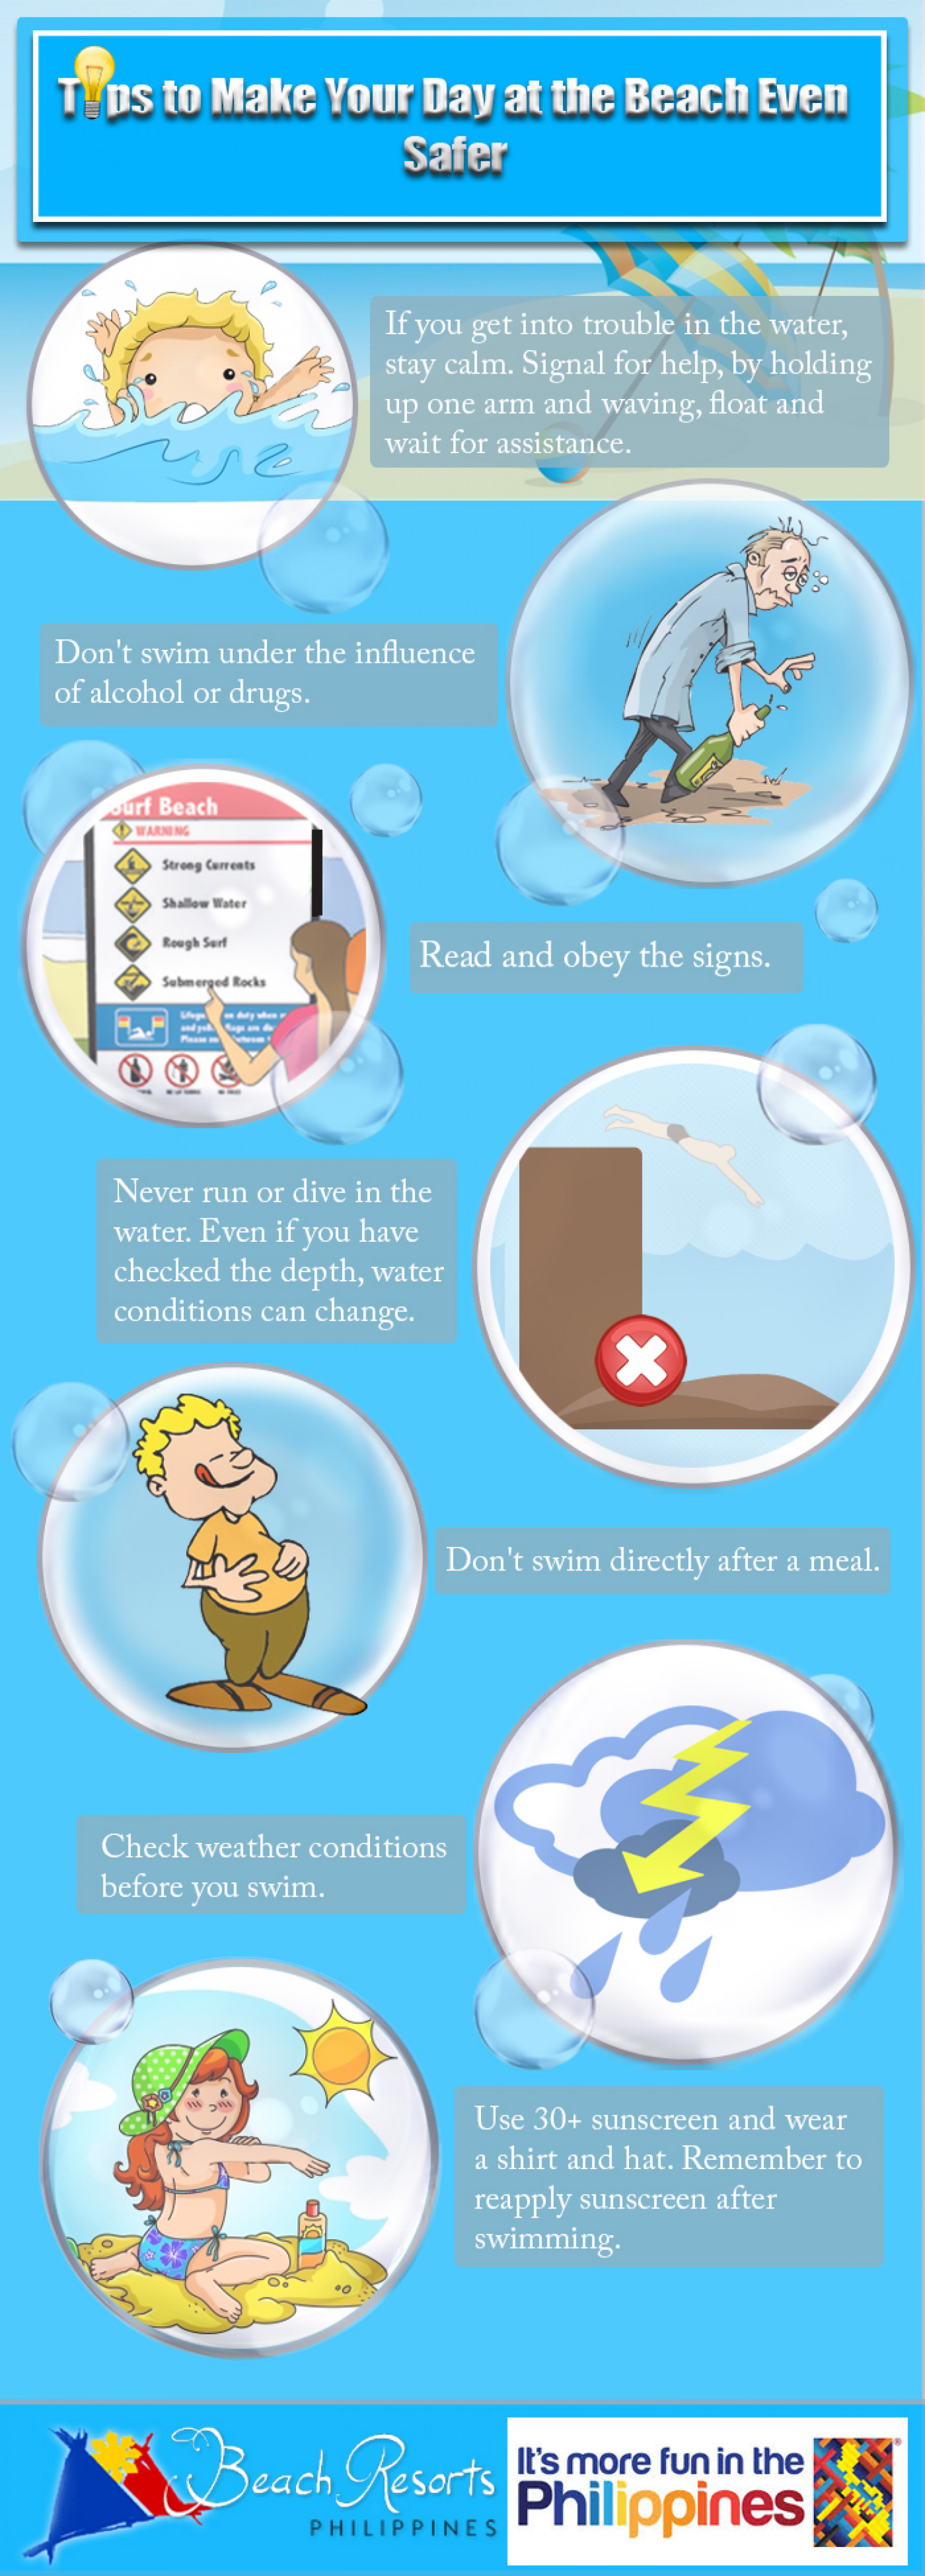 Tips To Make Your Day At The Beach Even Safer Infographic